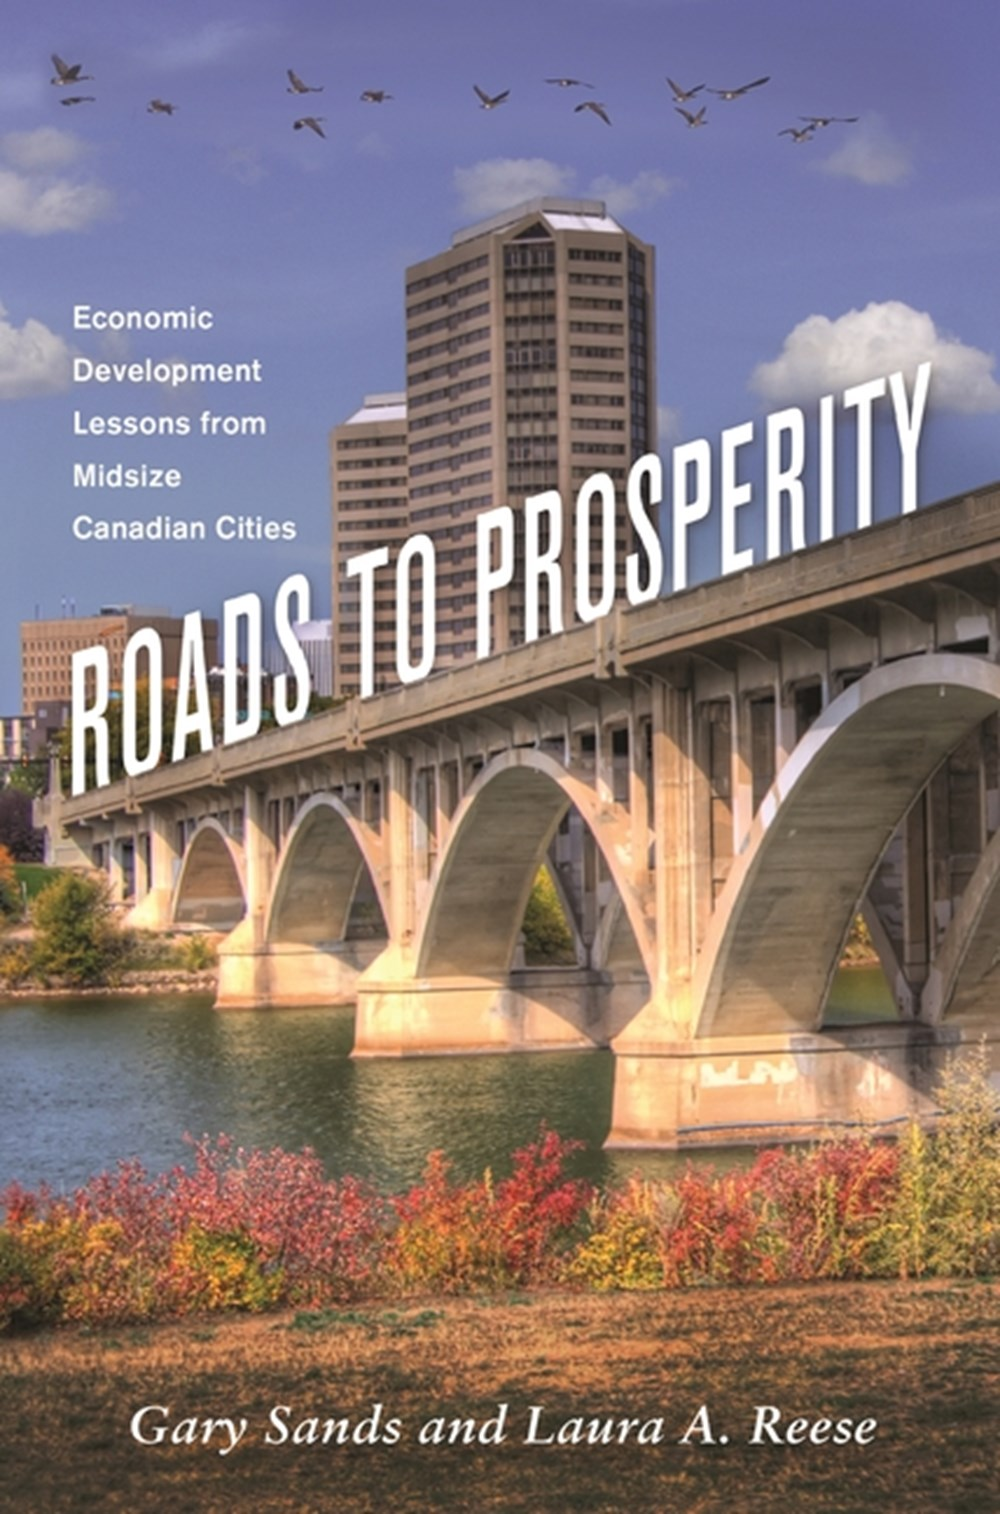 Roads to Prosperity Economic Development Lessons from Midsize Canadian Cities